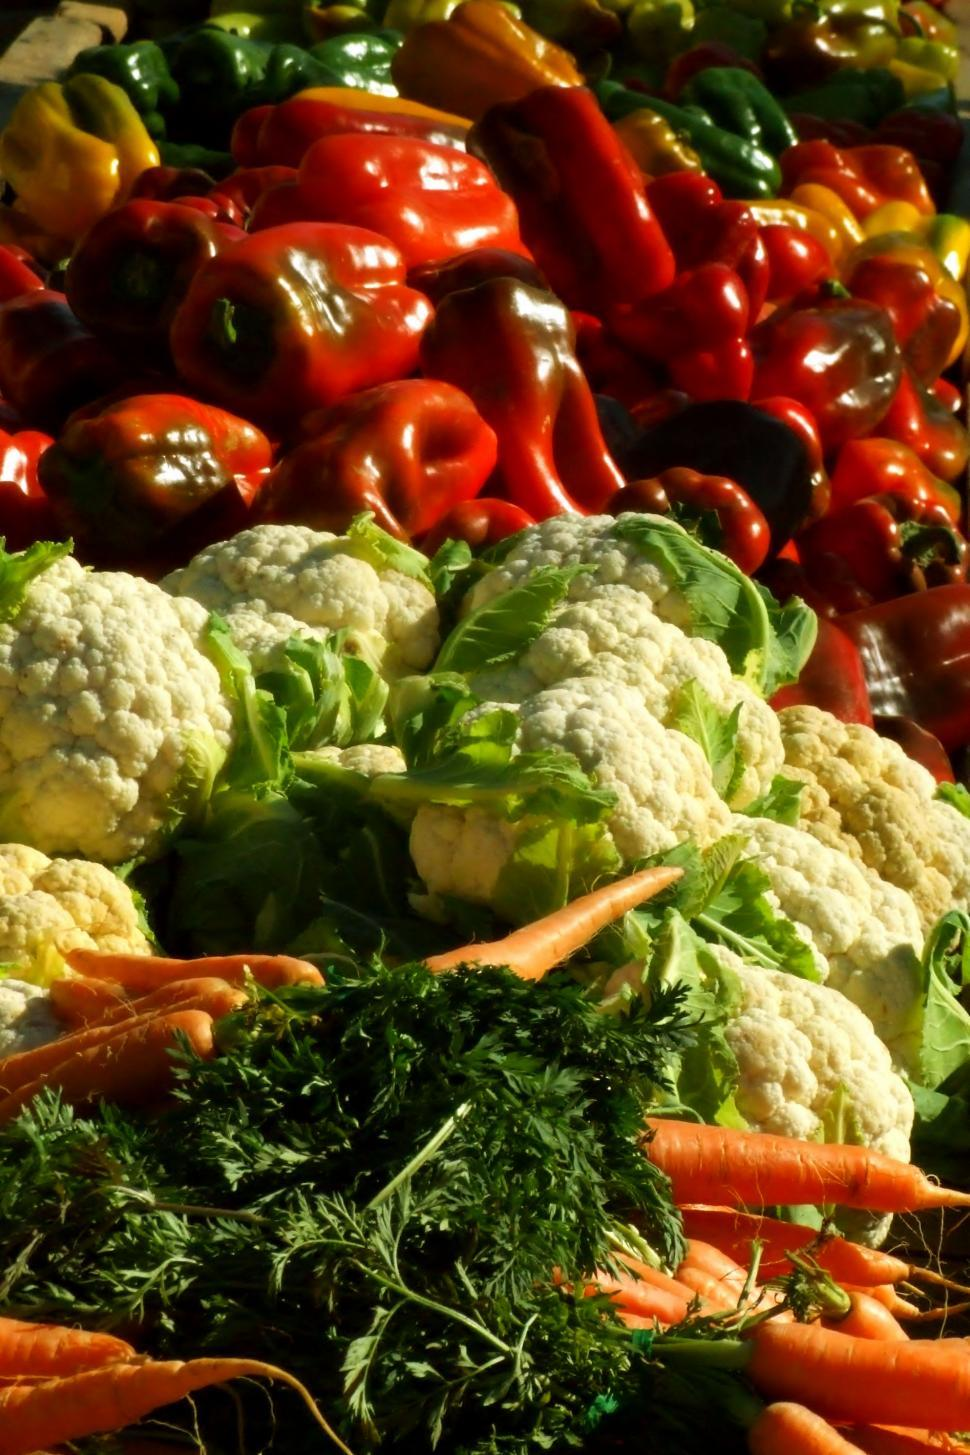 Download Free Stock Photo of Vegetables